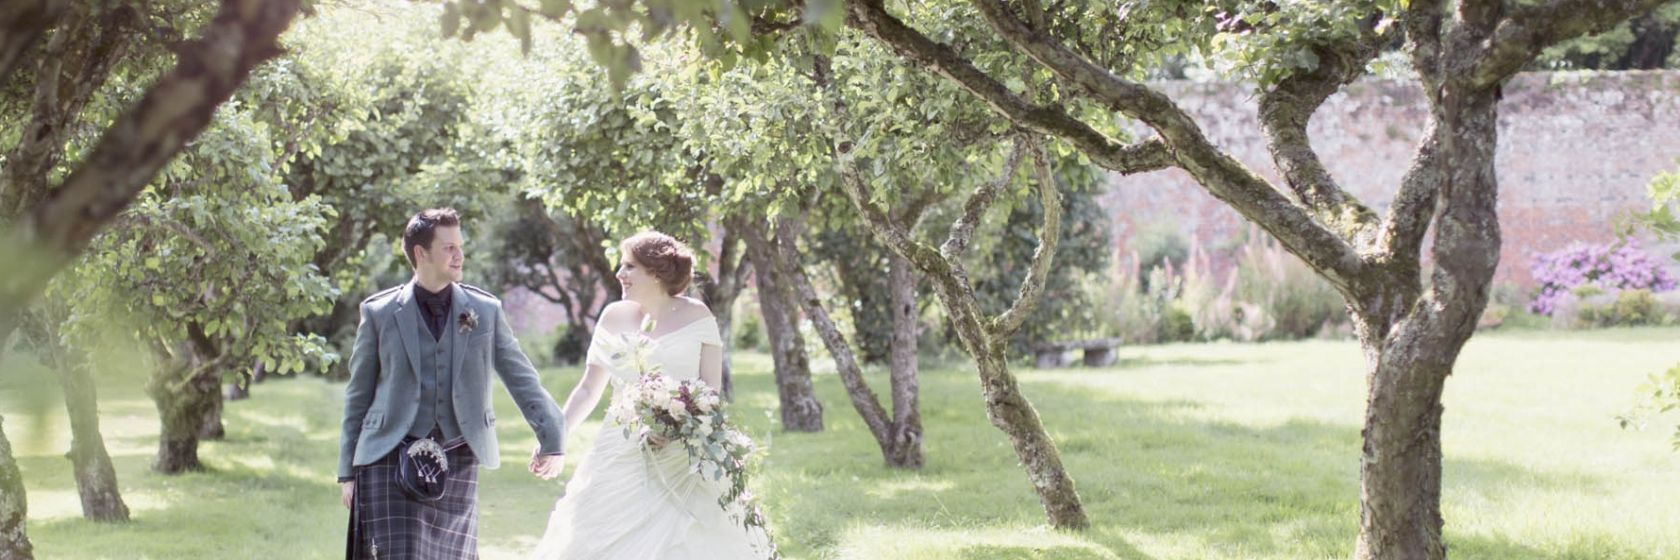 Walk down the aisle of ancient apple trees